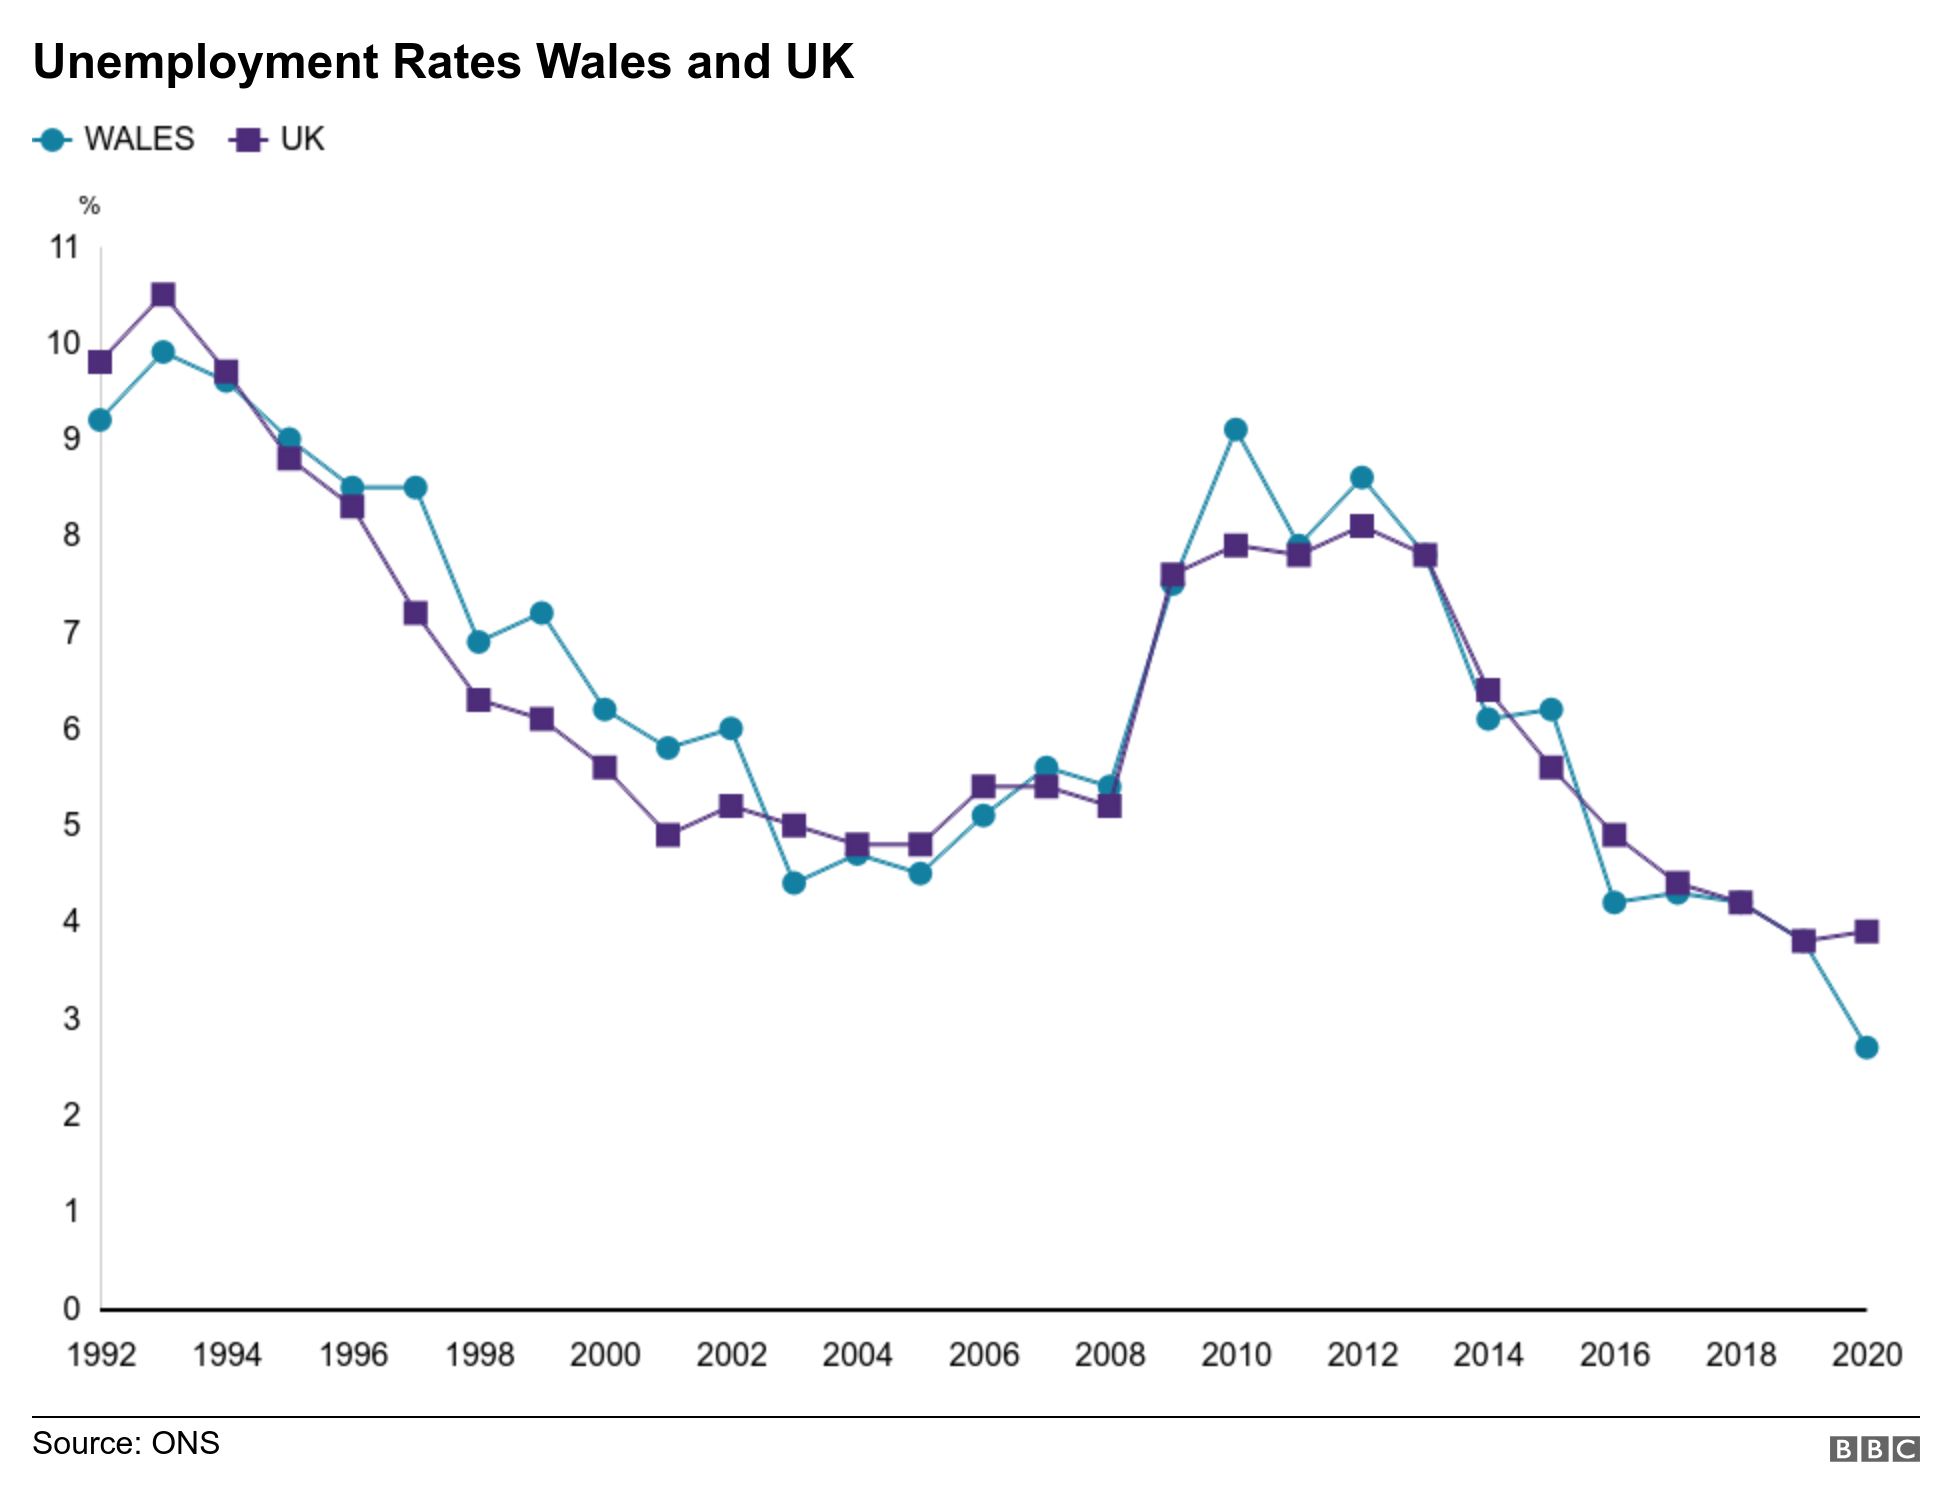 Unemployment rates in Wales and UK 1992-2020